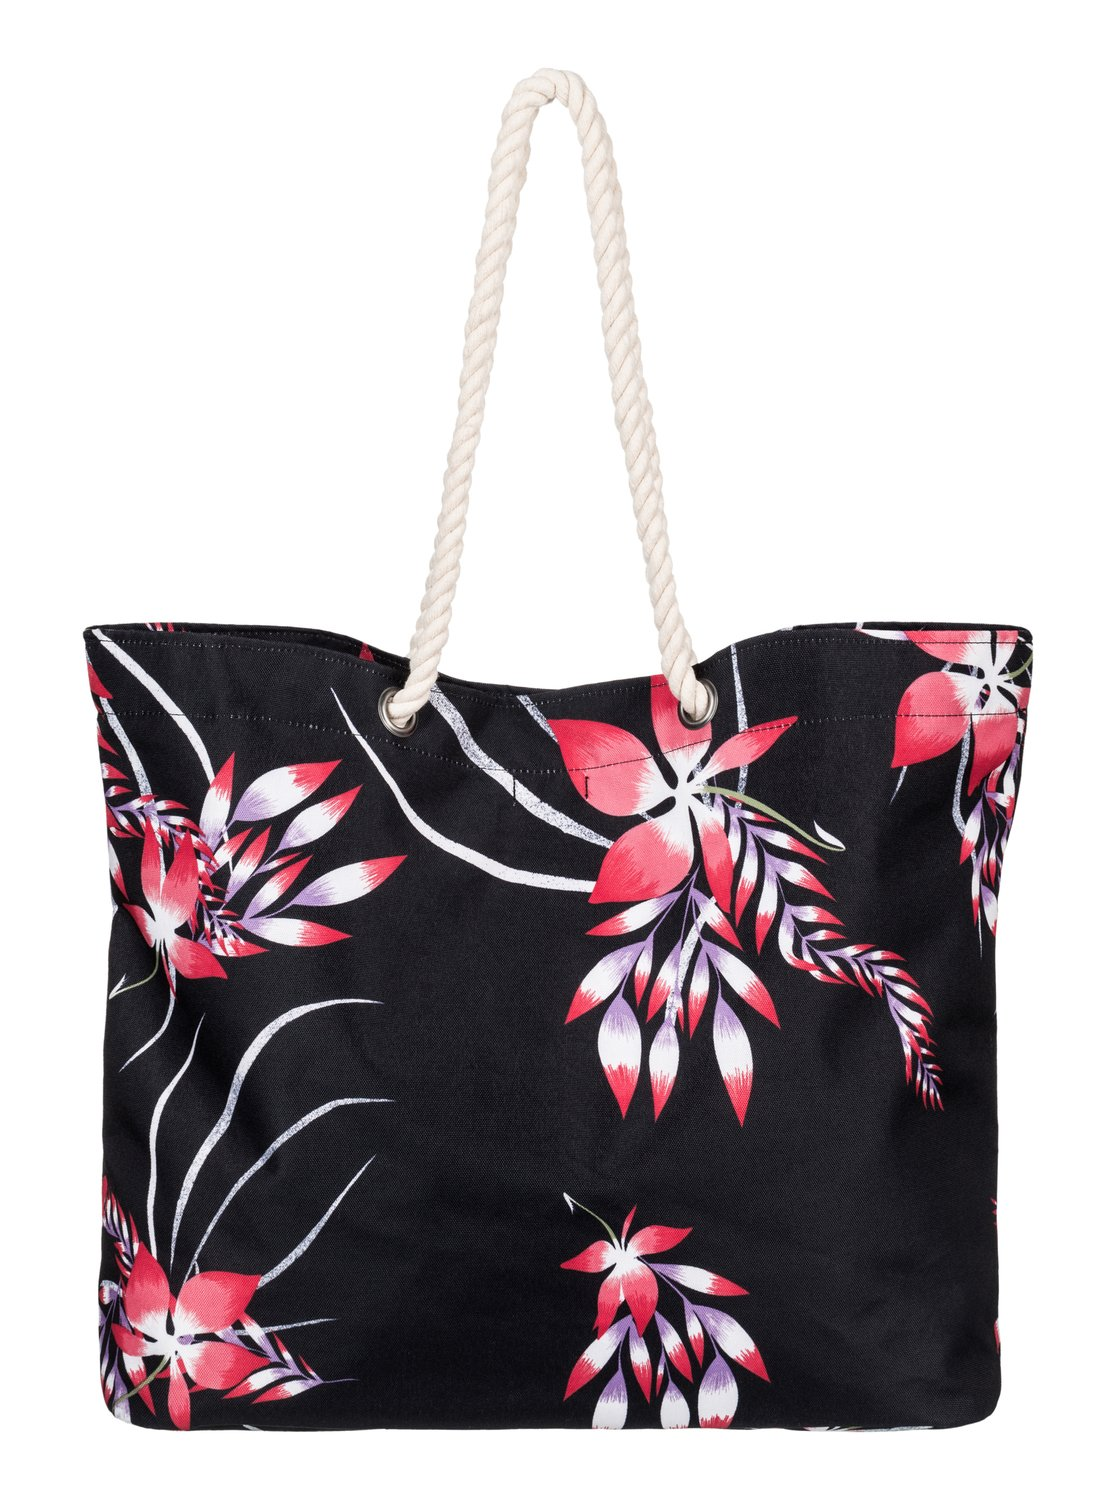 Torba Roxy Printed Tropical Vibe - Beach Bag (Anthracite Mistery Floral)